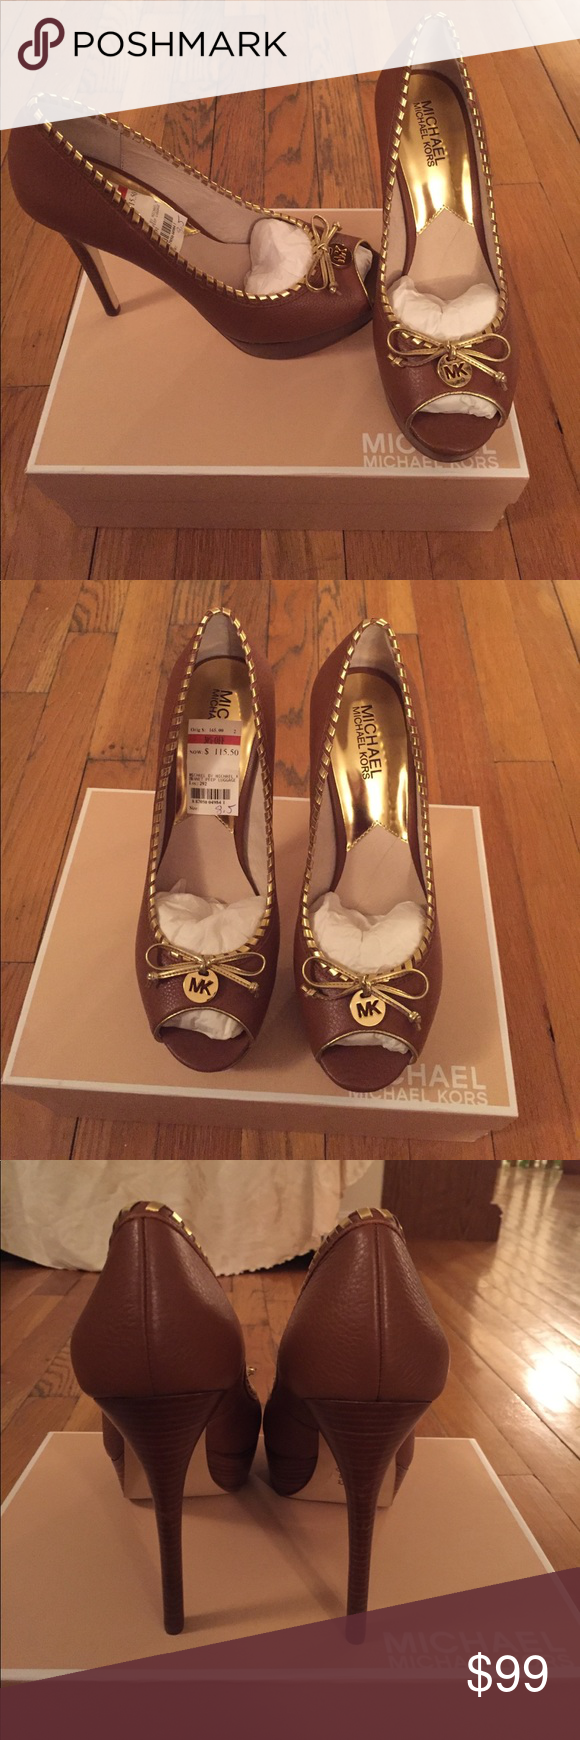 Authentic Michael Michael Kors brown pumps Authentic brown Michael Kors 5inch heels. Gold bow and trim around shoe. Worn once around the house. Original packaging and box included. Michael Kors Shoes Heels